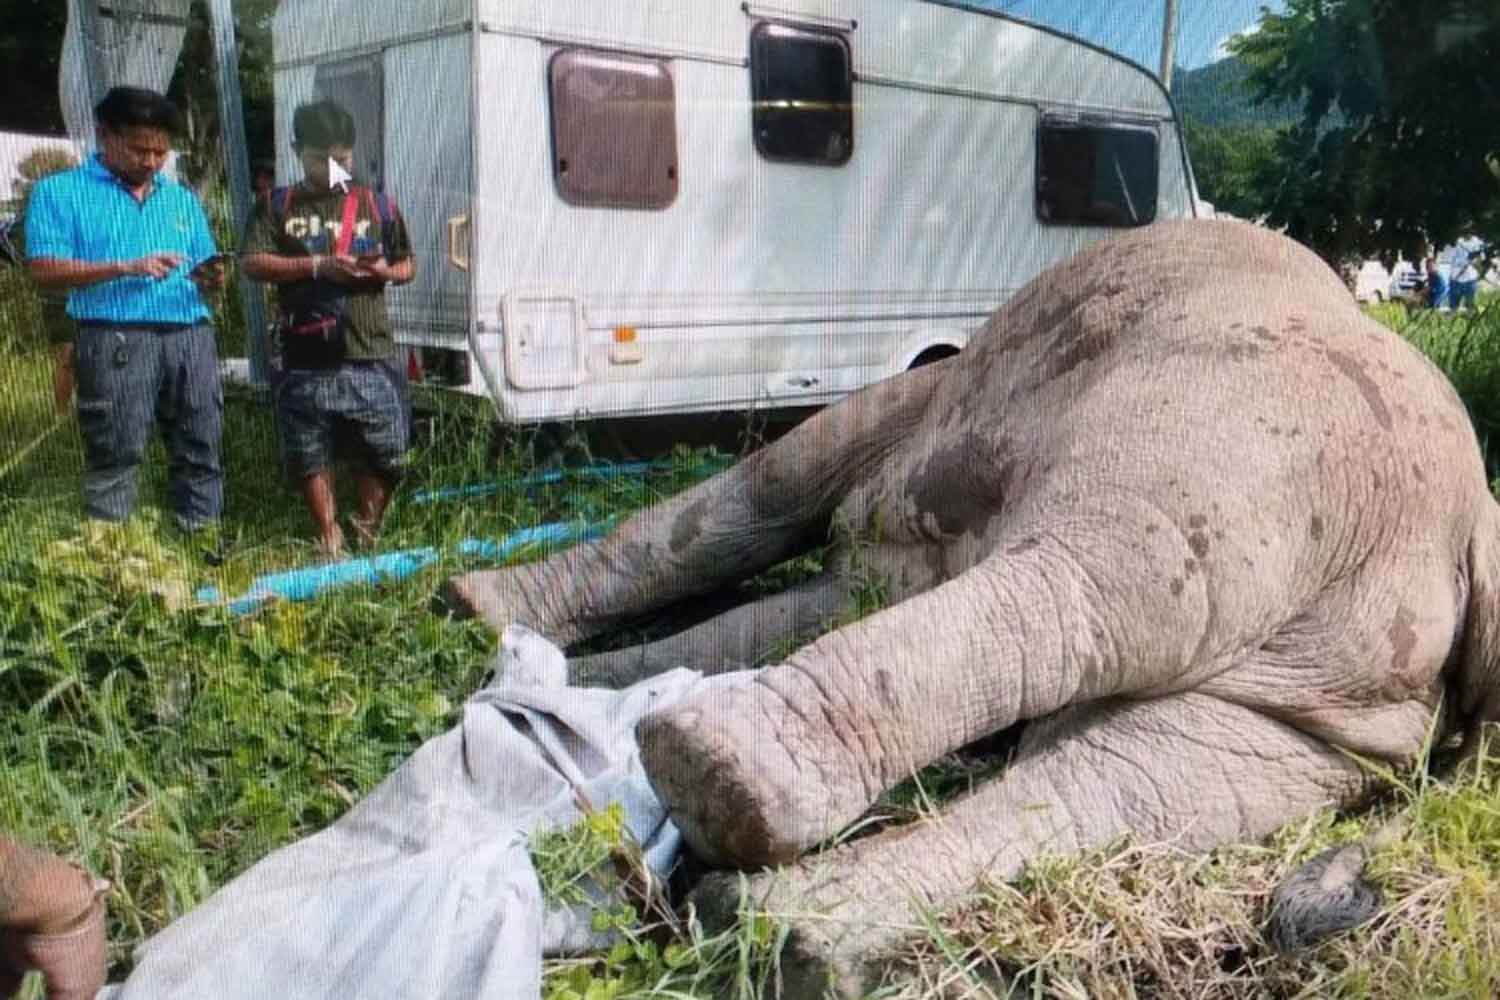 The dead bull elephant, found elecrocuted at the Caravans Club Thailand resort in Pak Chong district, Nakhon Ratchasima, on Wednesday morning. (Photo supplied)